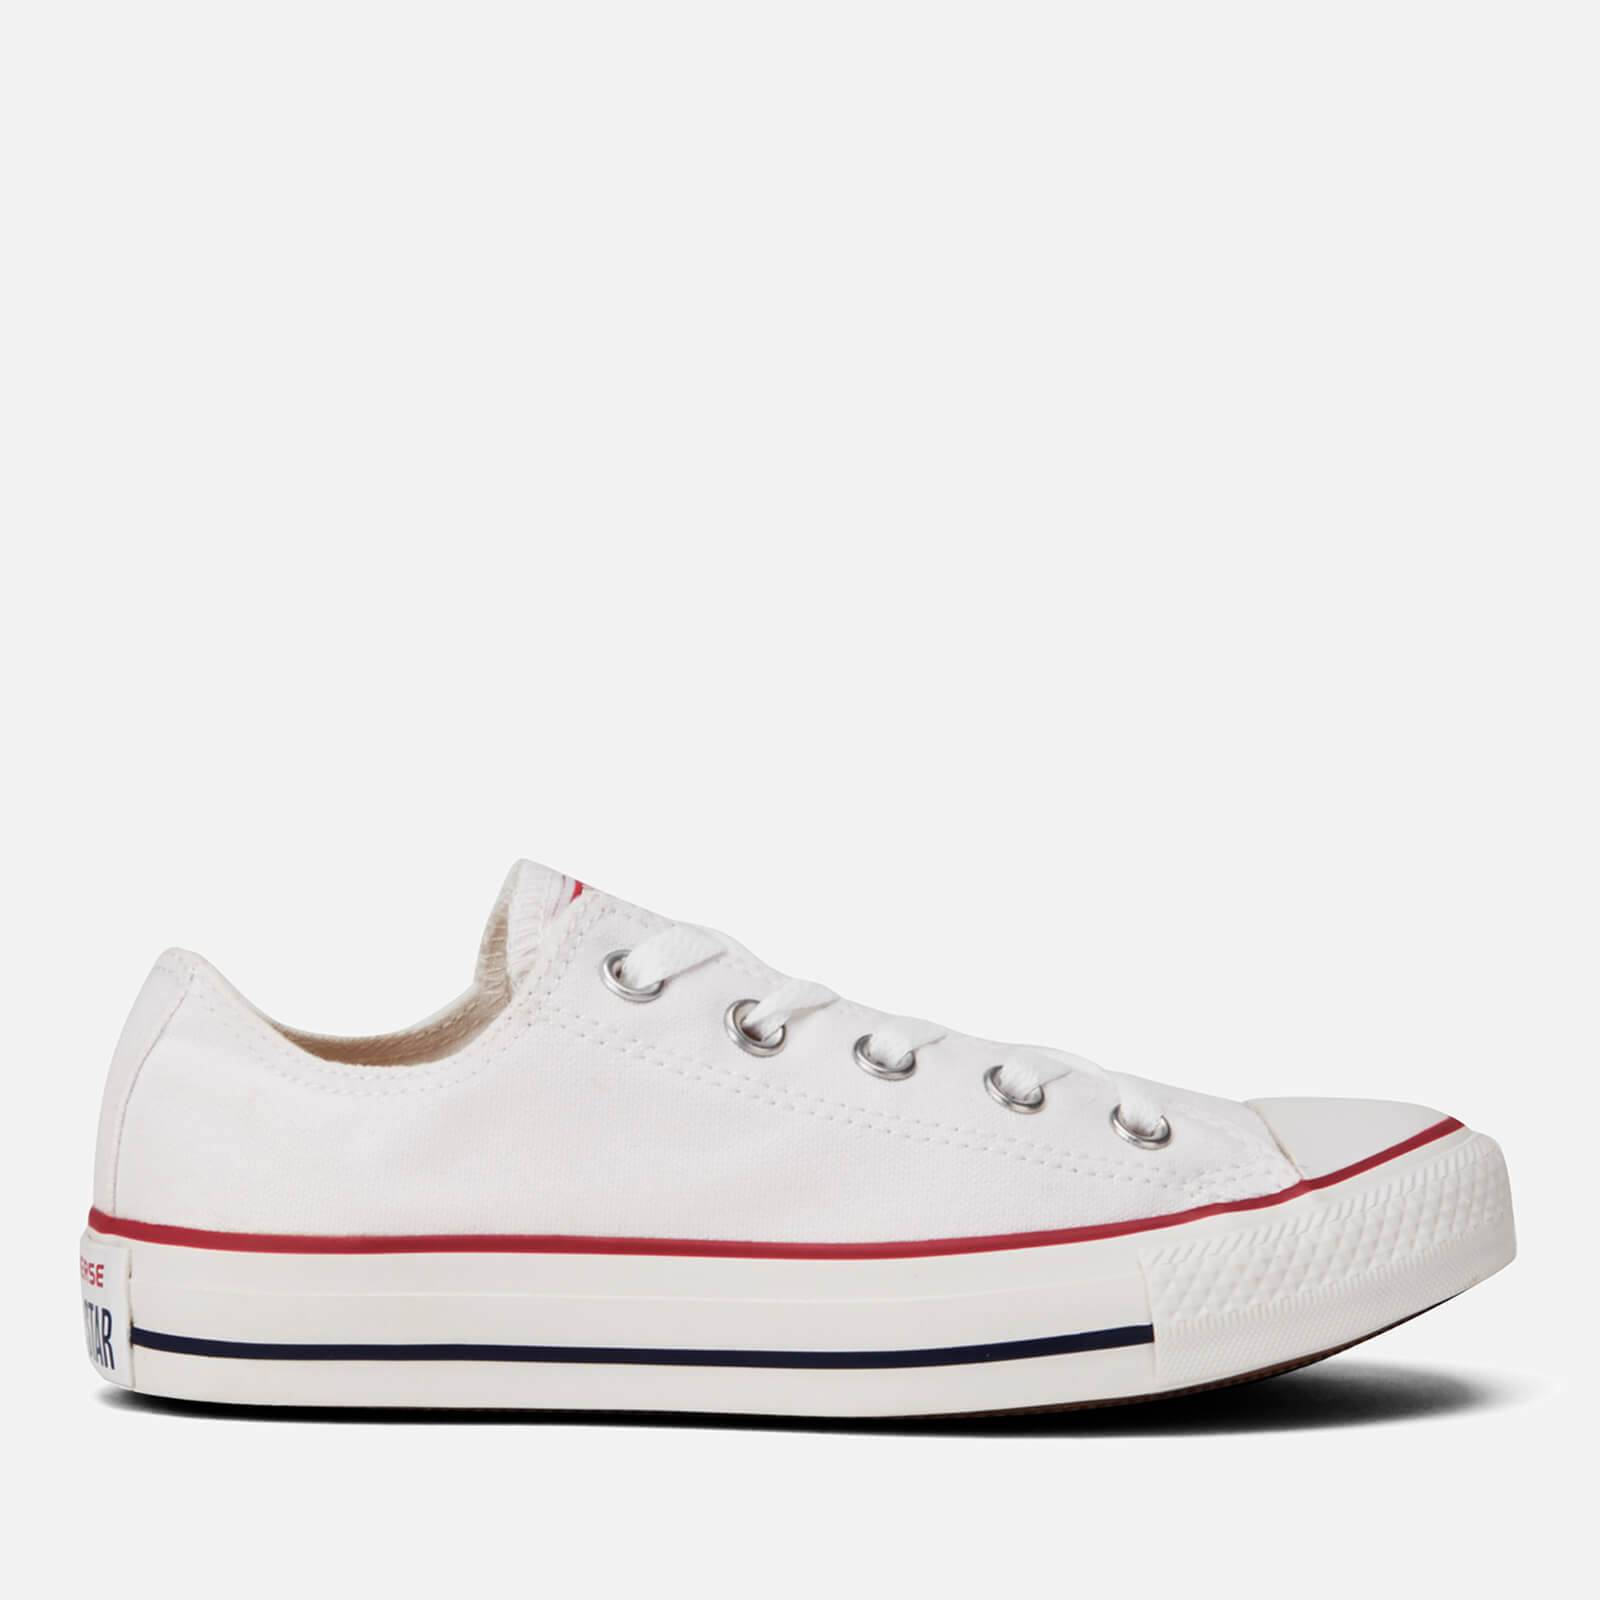 Converse Chuck Taylor All Star Ox Canvas Trainers - Optical White - UK 11